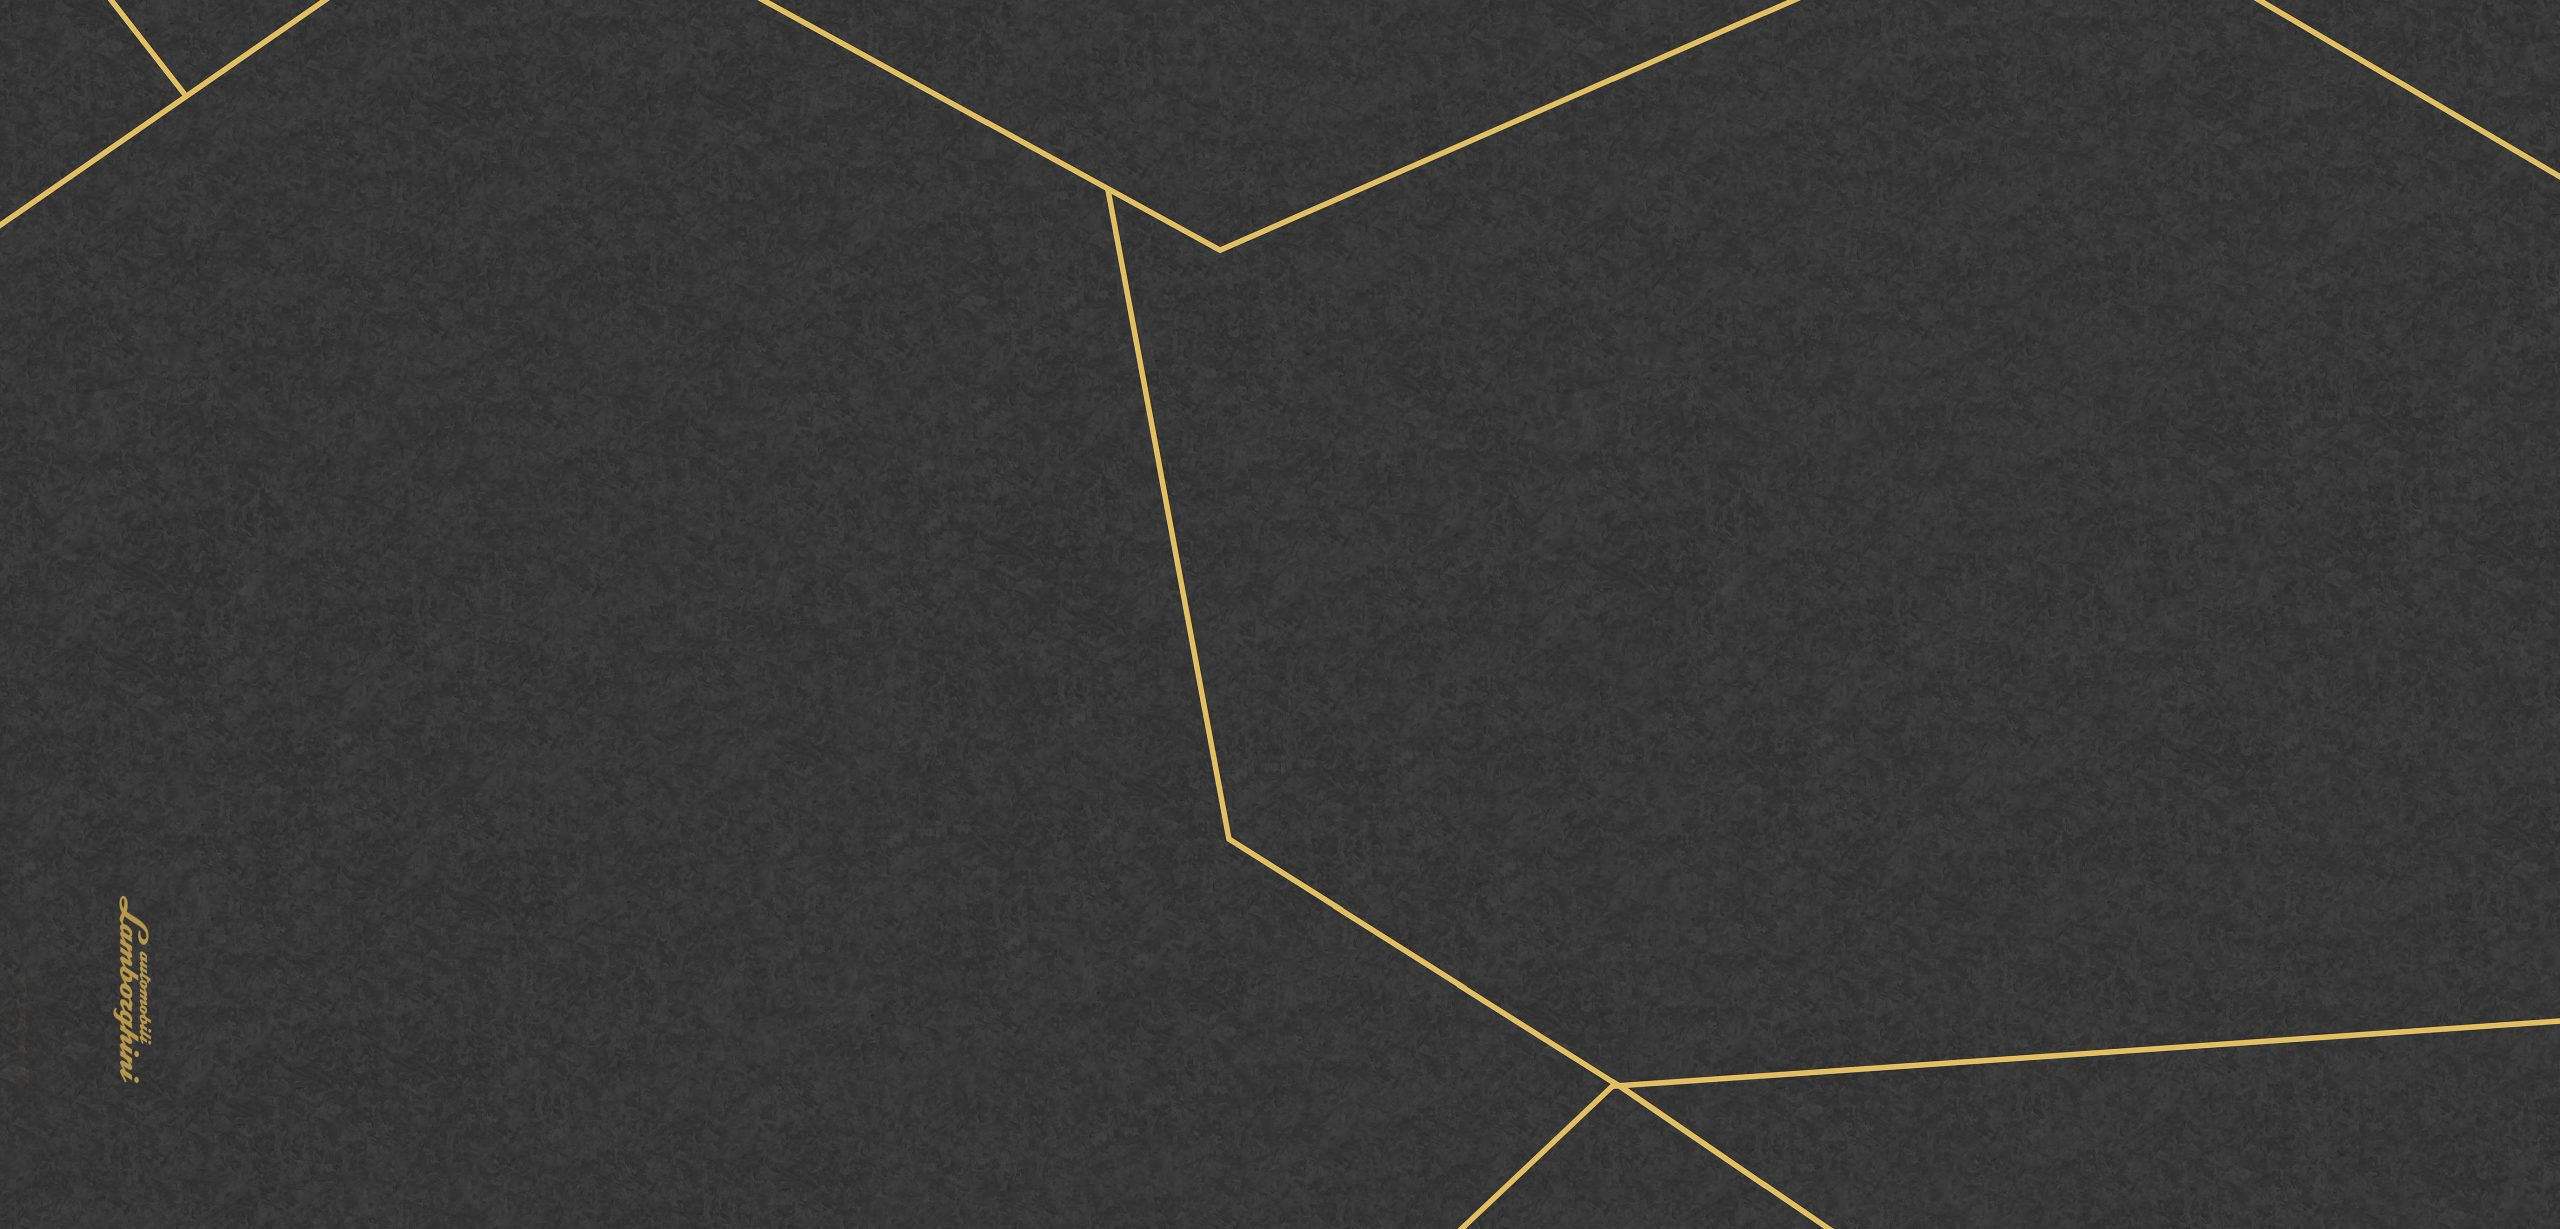 Automobili-Lamborghini-Surfaces_textures-AL04-black